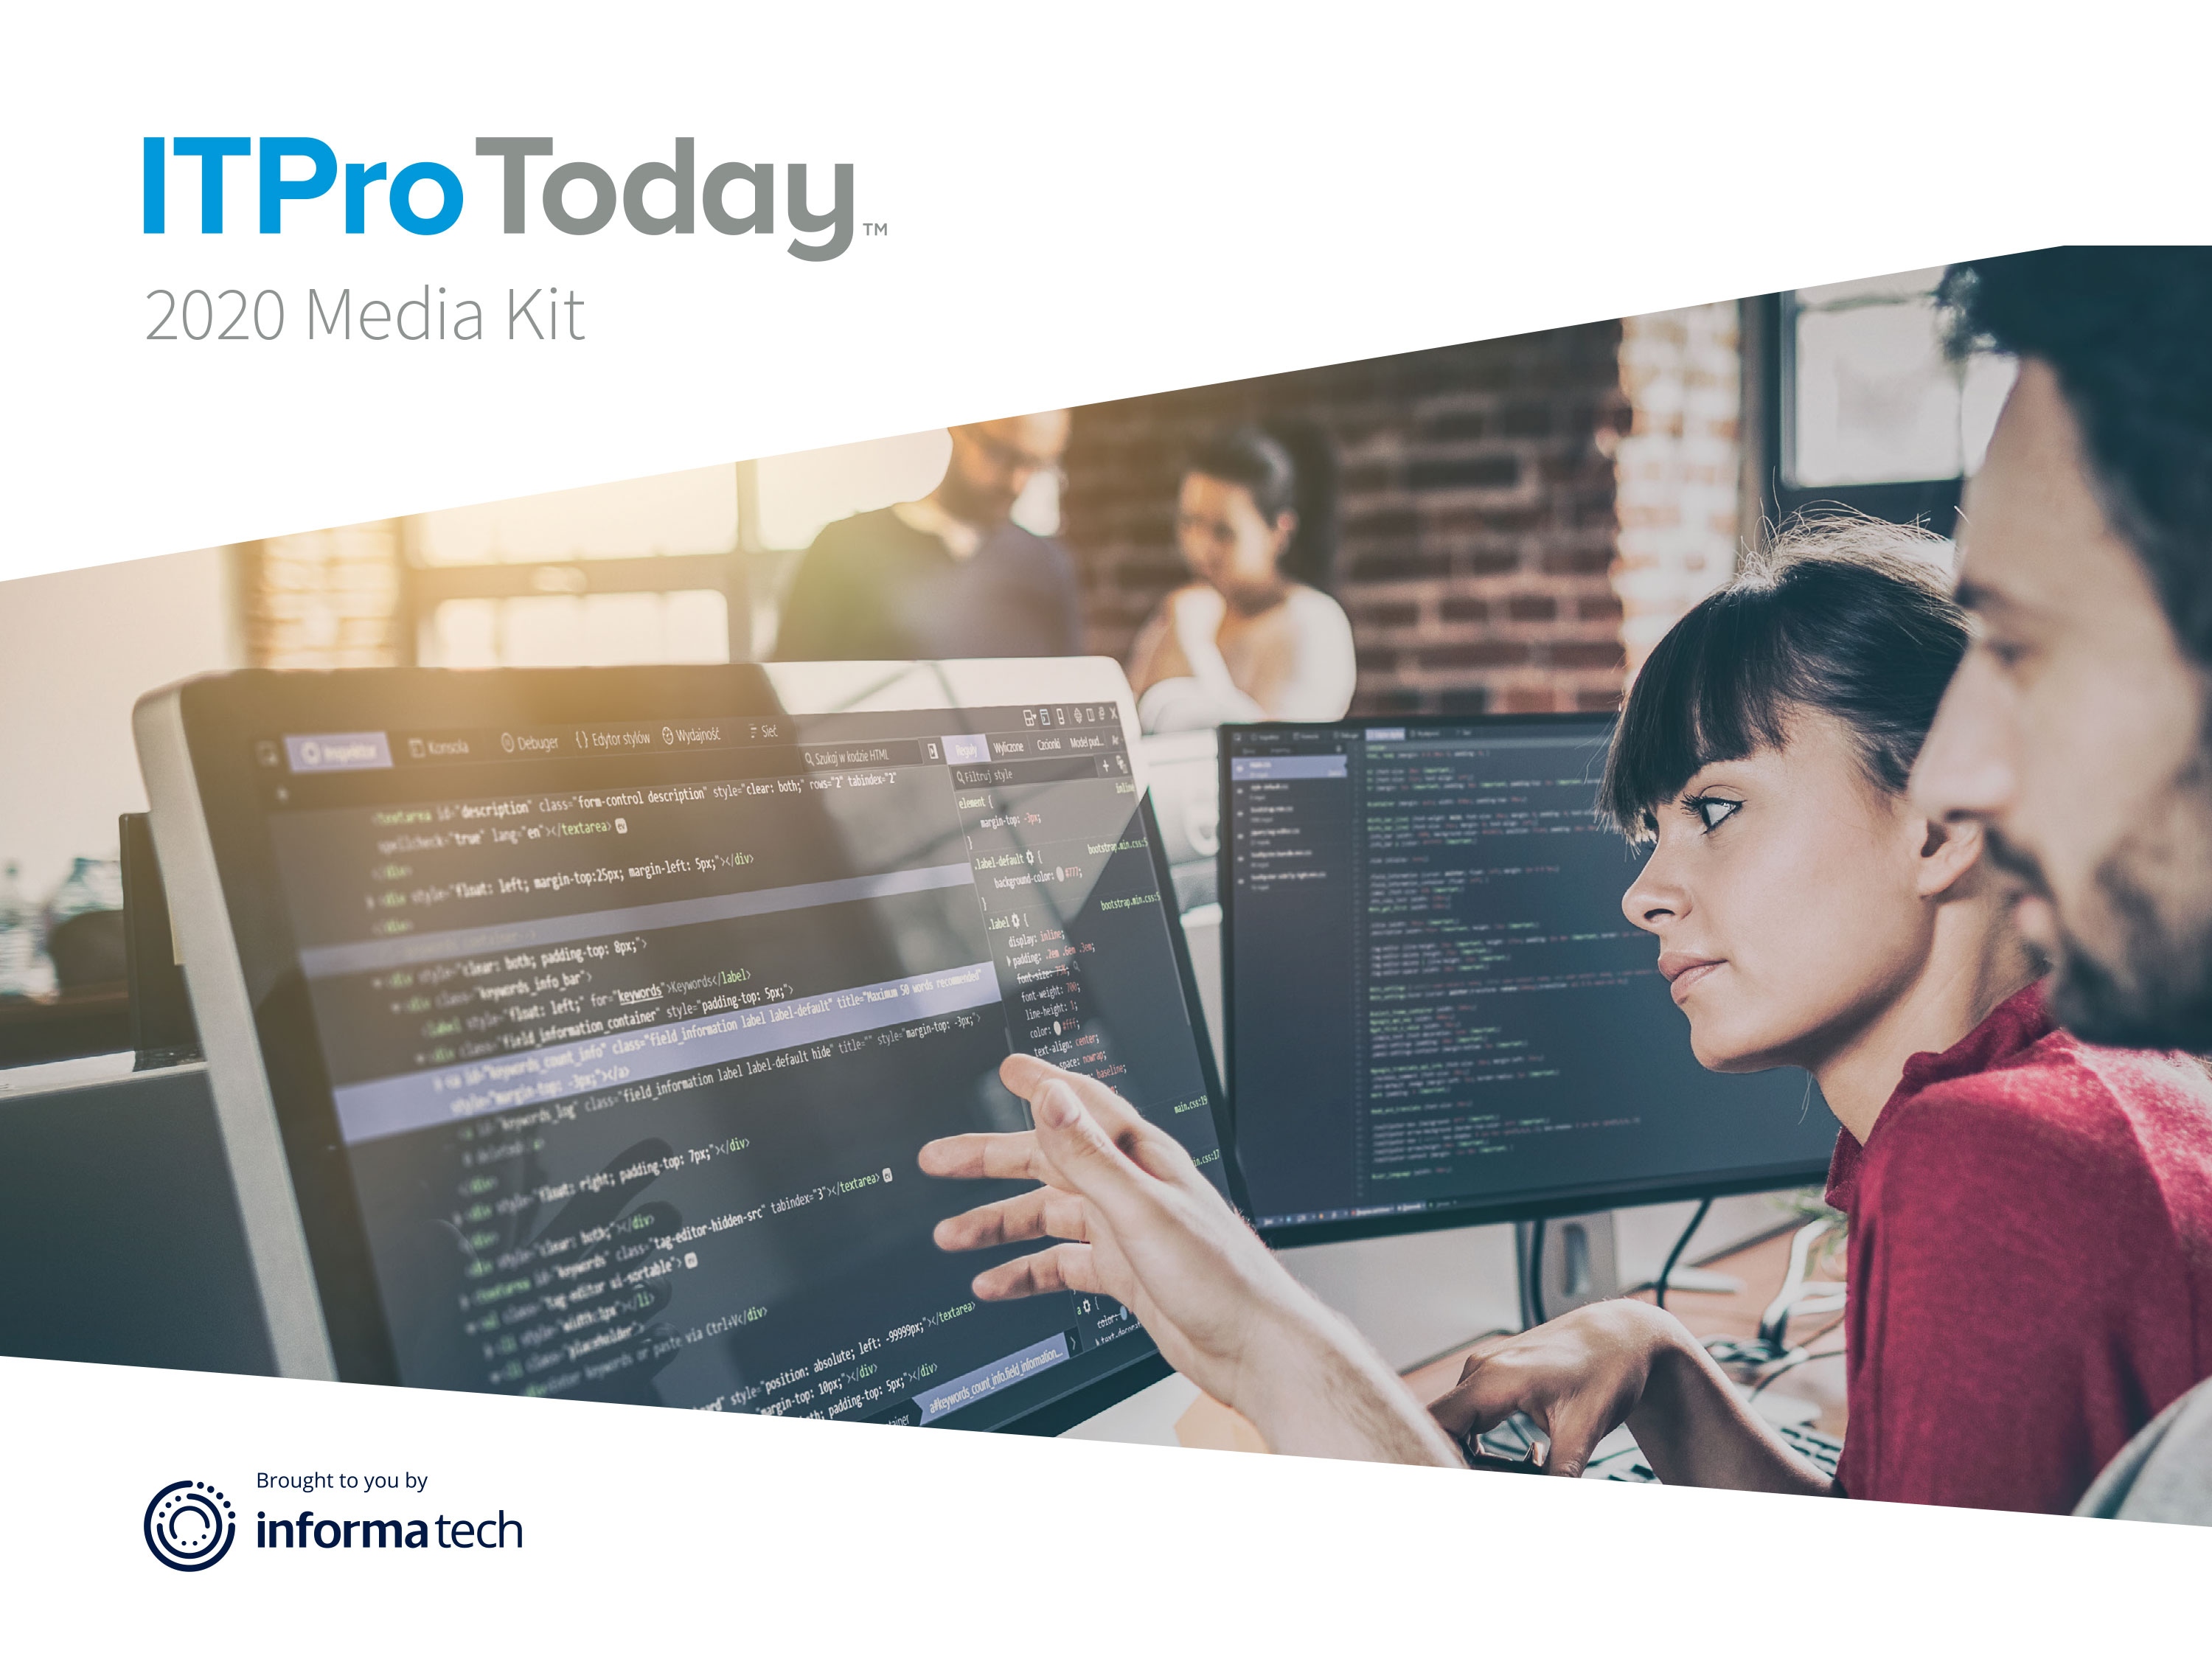 ITPro Today 2020 Media Kit